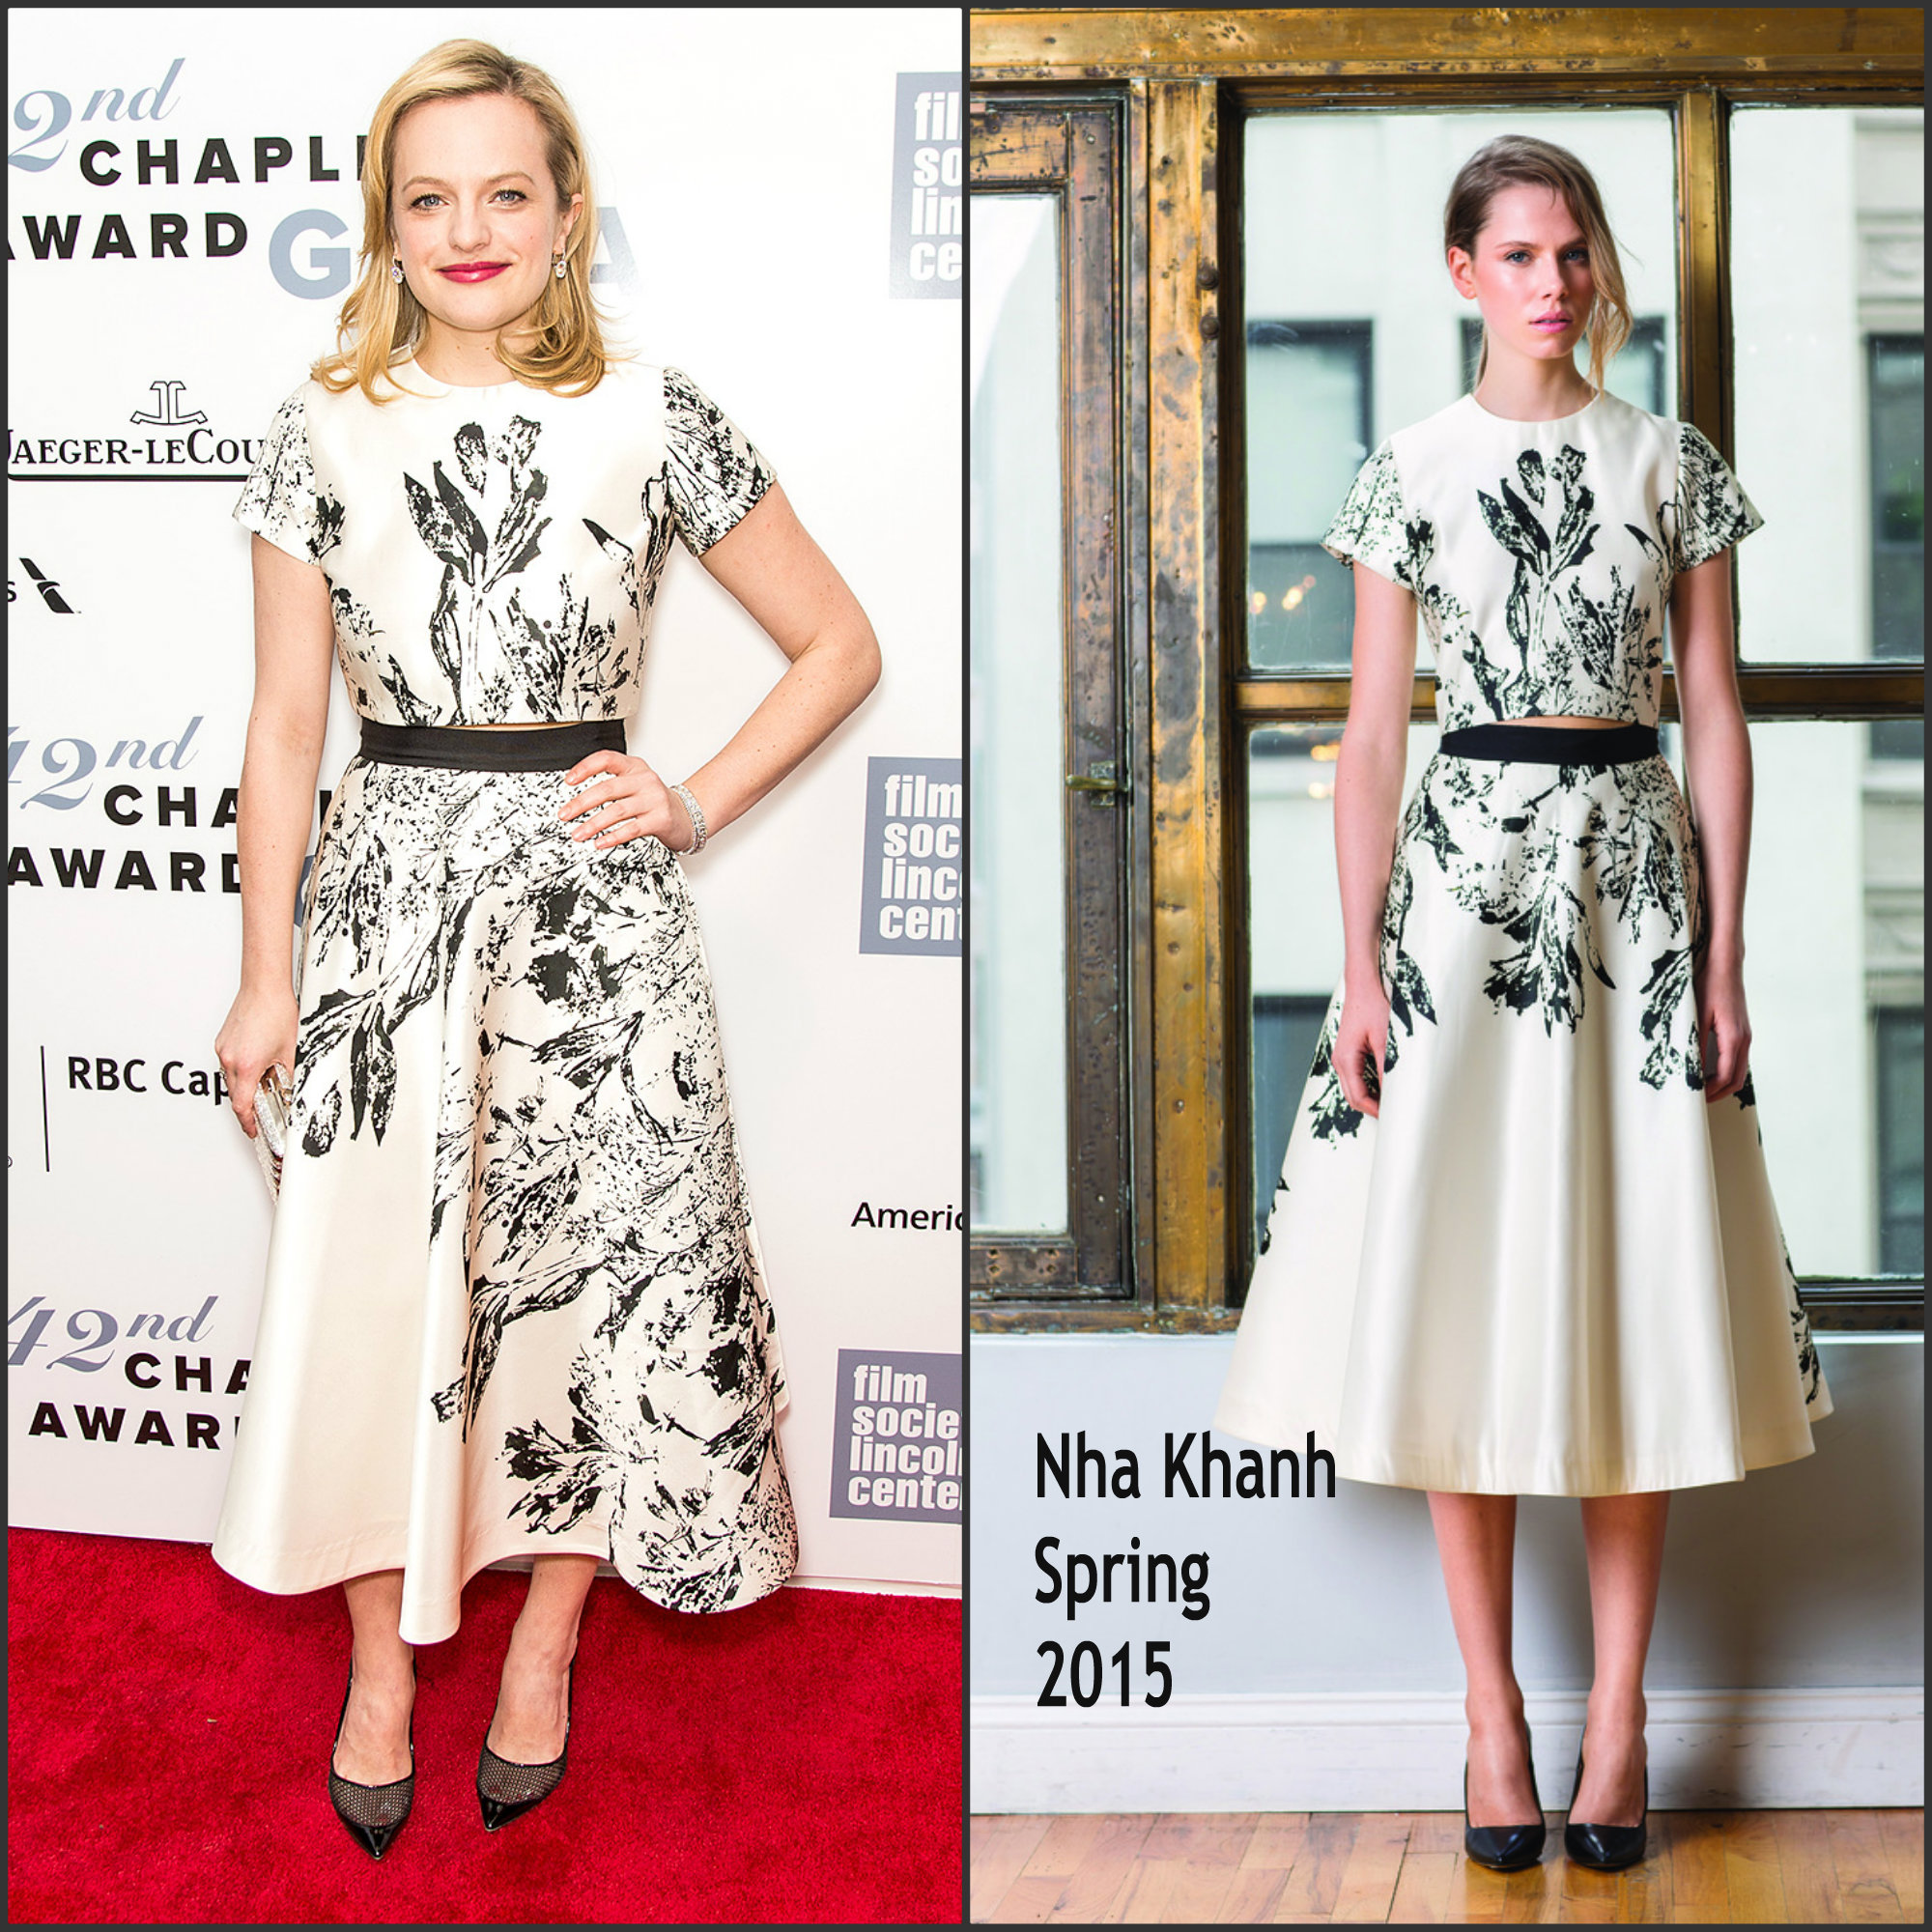 Elisabeth-Moss-in-Nha-Khanh-at-42nd-Chaplin-Award-Gala